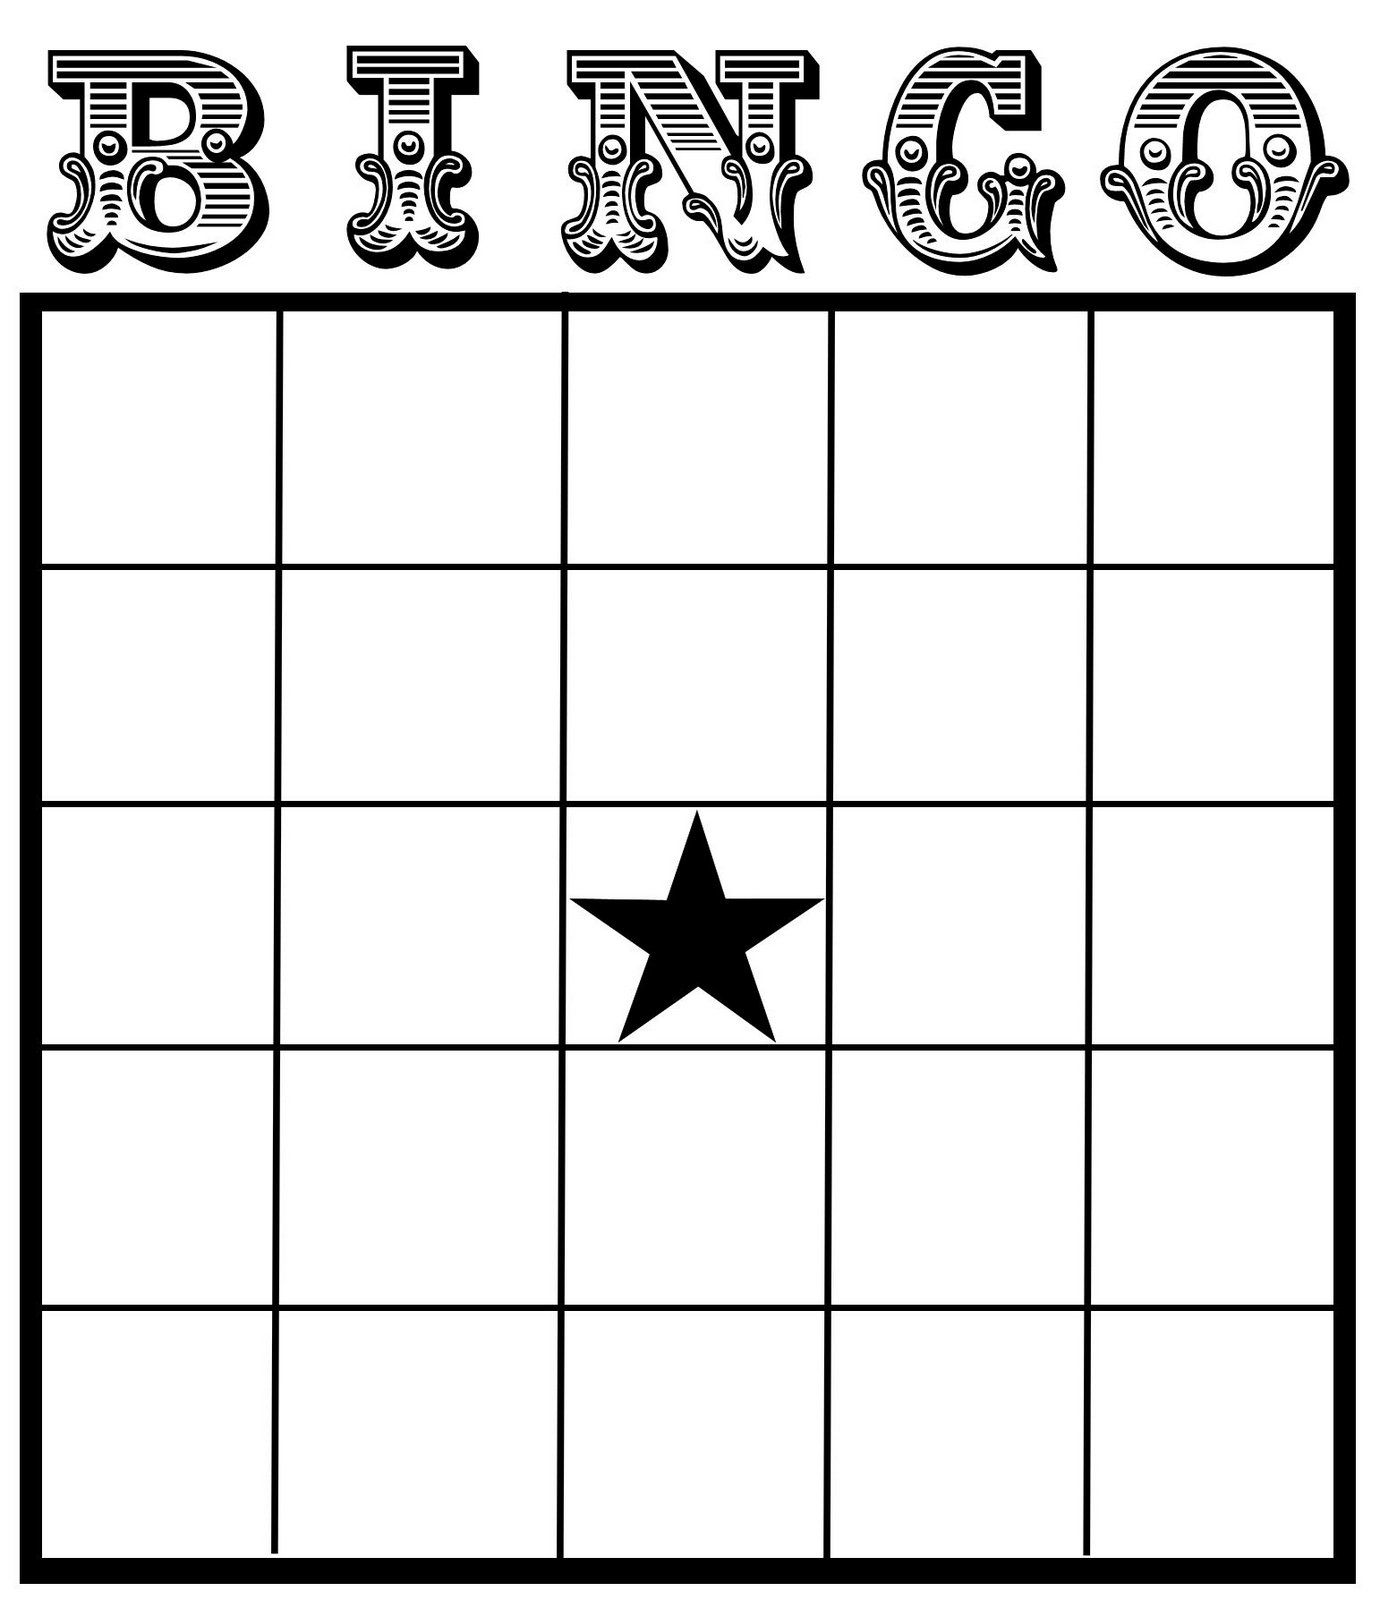 christine zani bingo card printables to share reading writing pinterest blank bingo. Black Bedroom Furniture Sets. Home Design Ideas